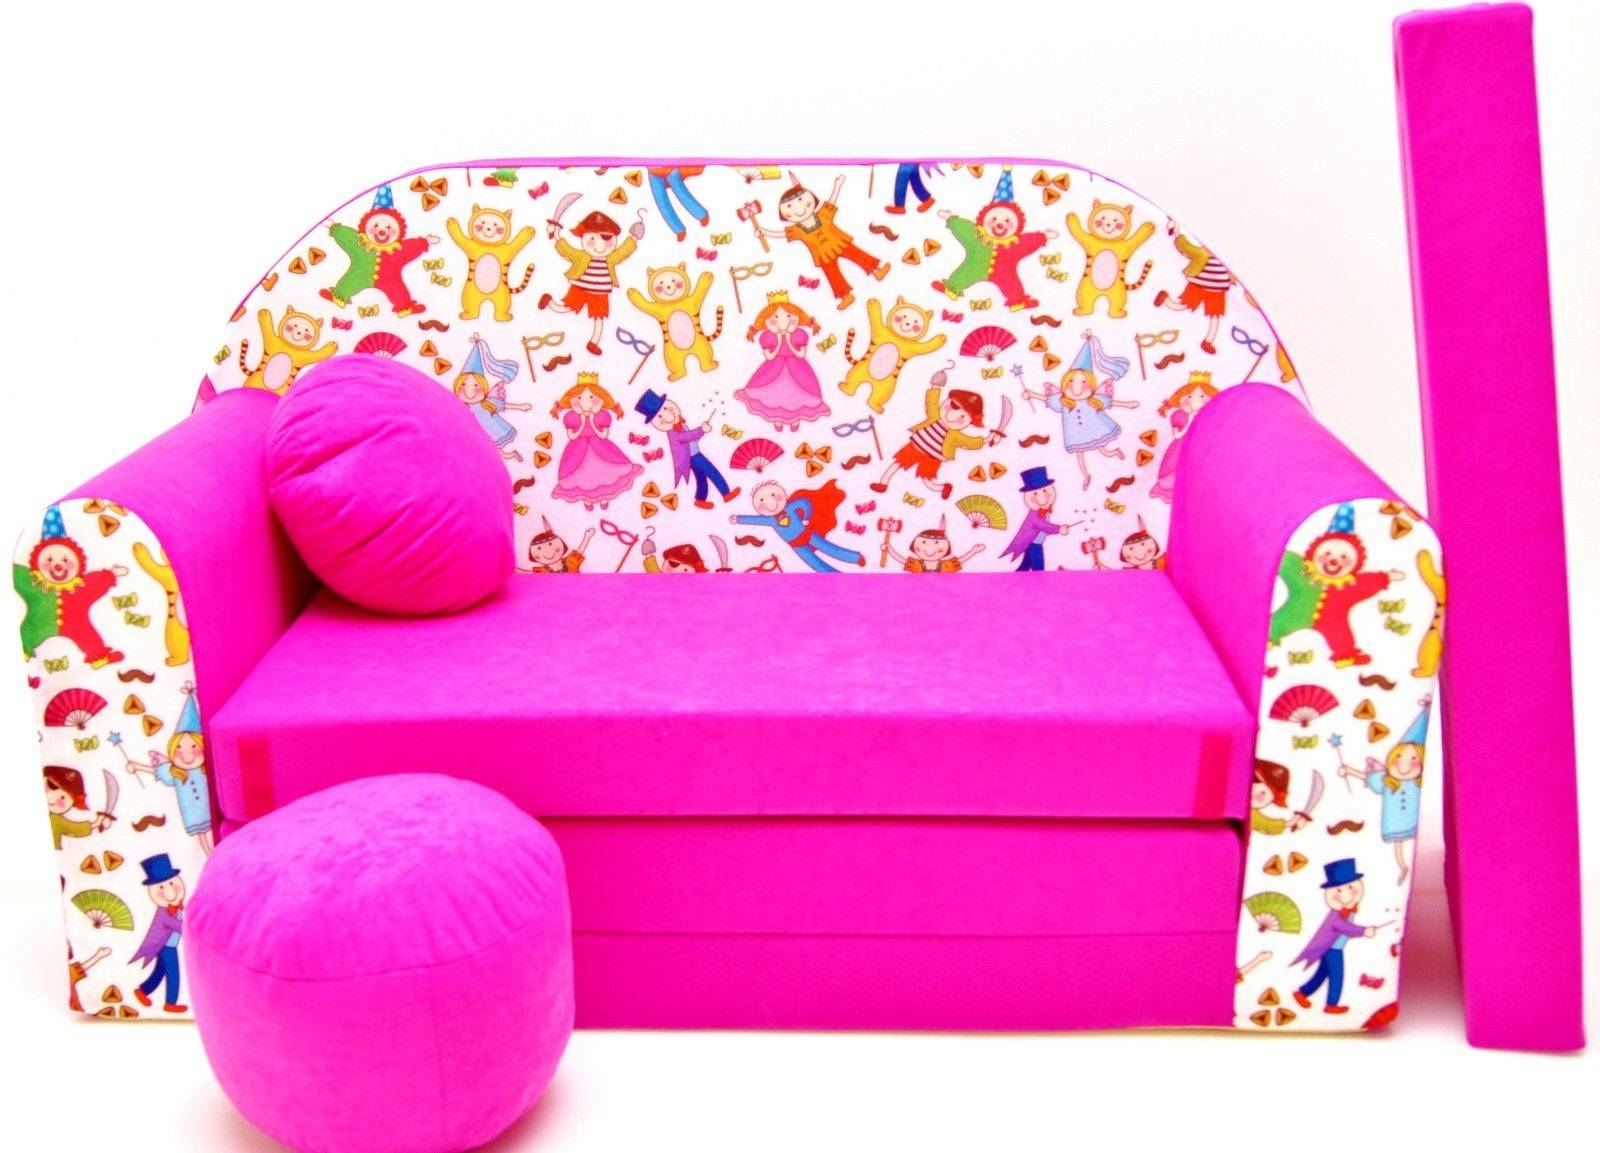 Childrens Sofa Bed, Fold Out Sofa Bed + Free Pillow And Pouffe throughout Footstool Pouffe Sofa Folding Bed (Image 4 of 25)